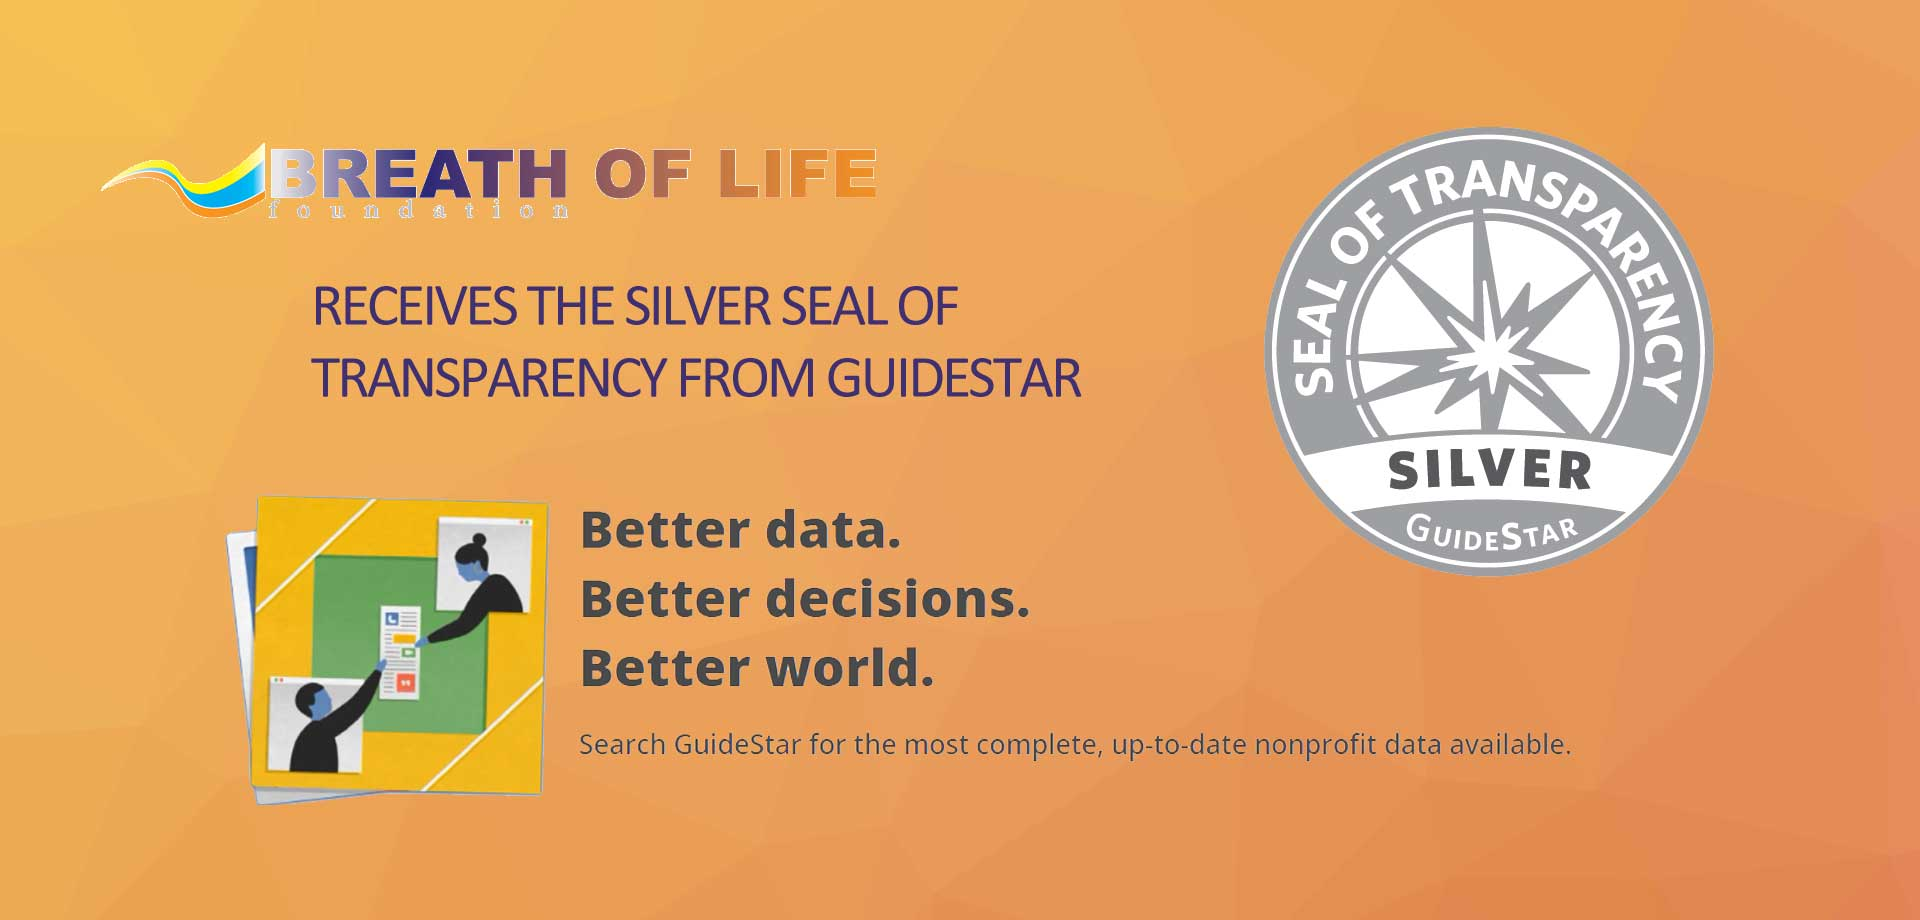 GuideStar Silver Seal of Transparency awarded to Breath of Life Foundation